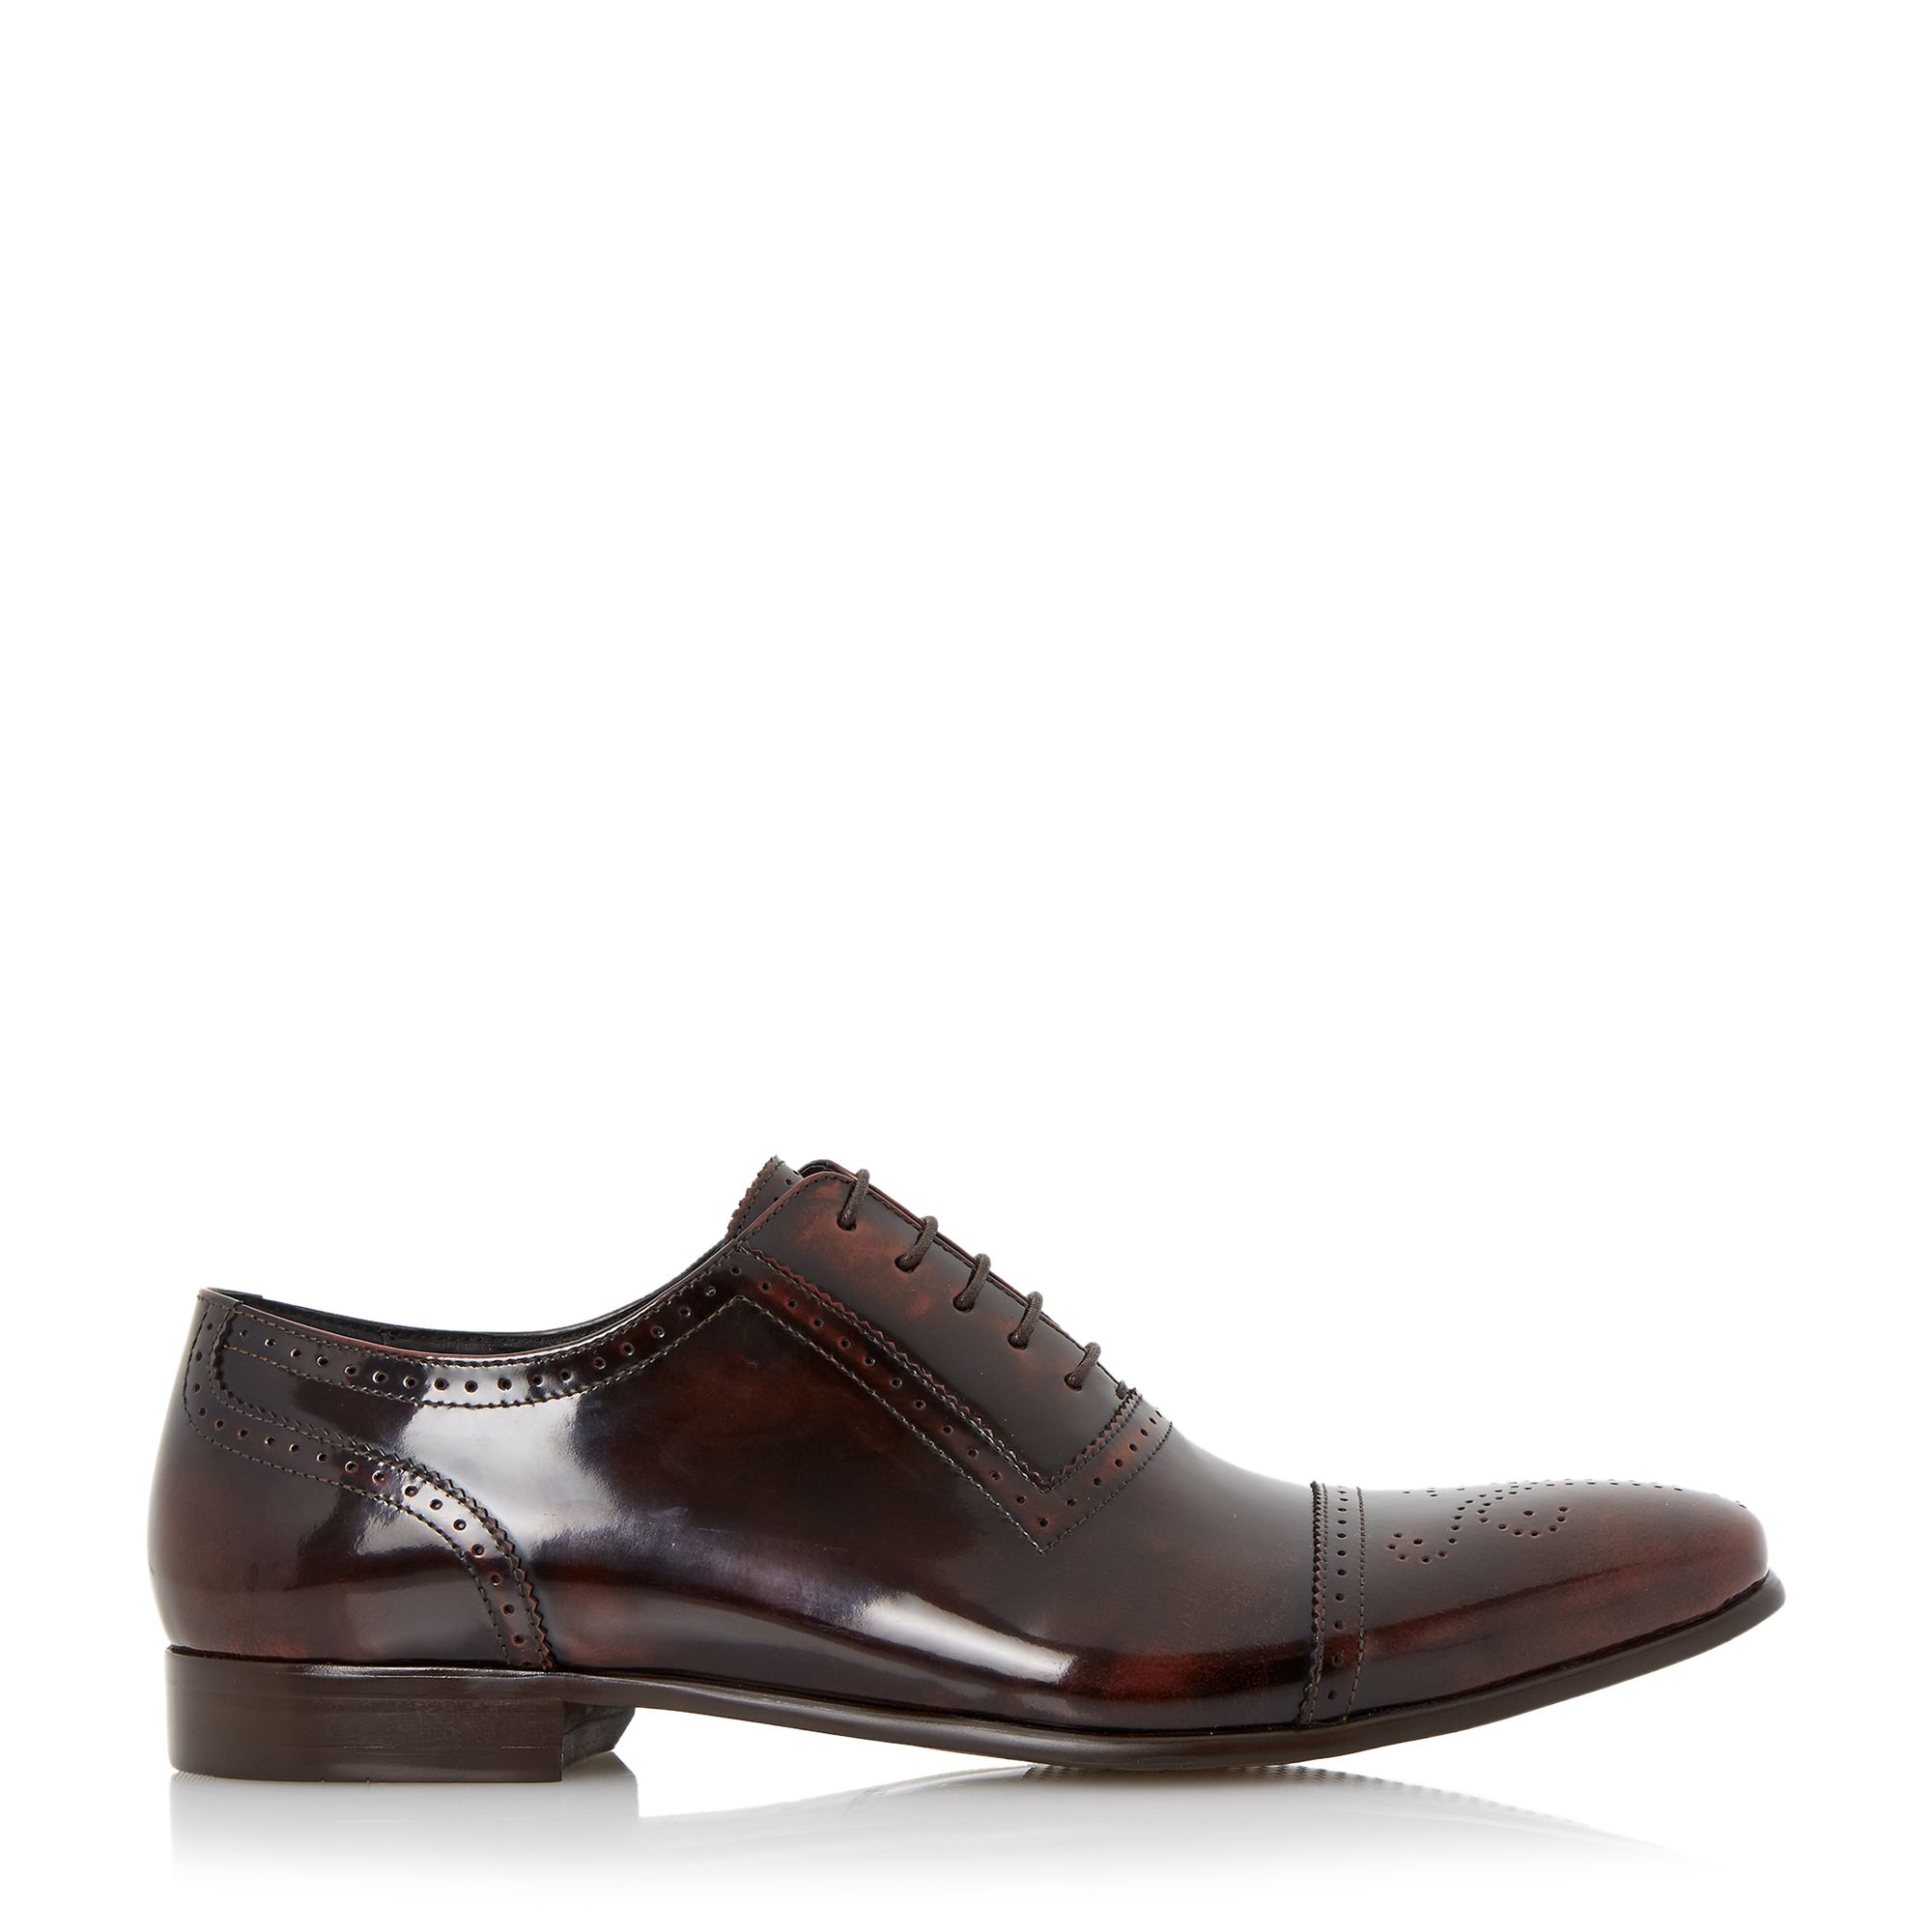 dune rule toecap detail leather oxford shoe in brown for